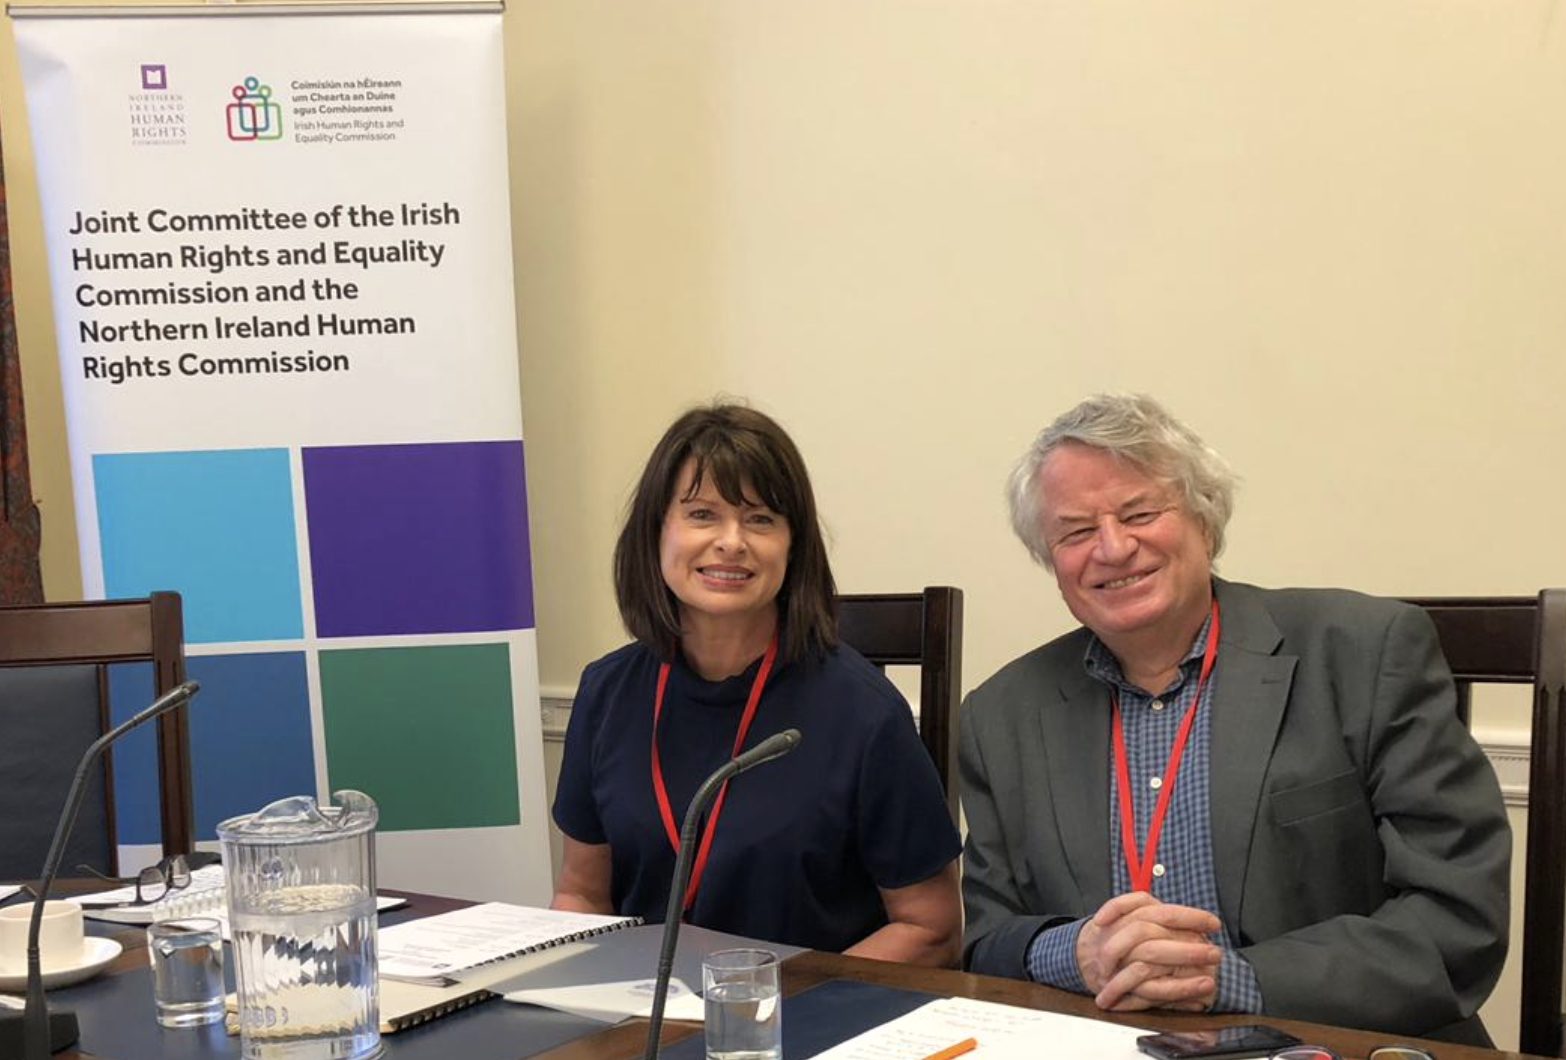 b9ec53d96 The Northern Ireland Human Rights Commission (NIHRC)